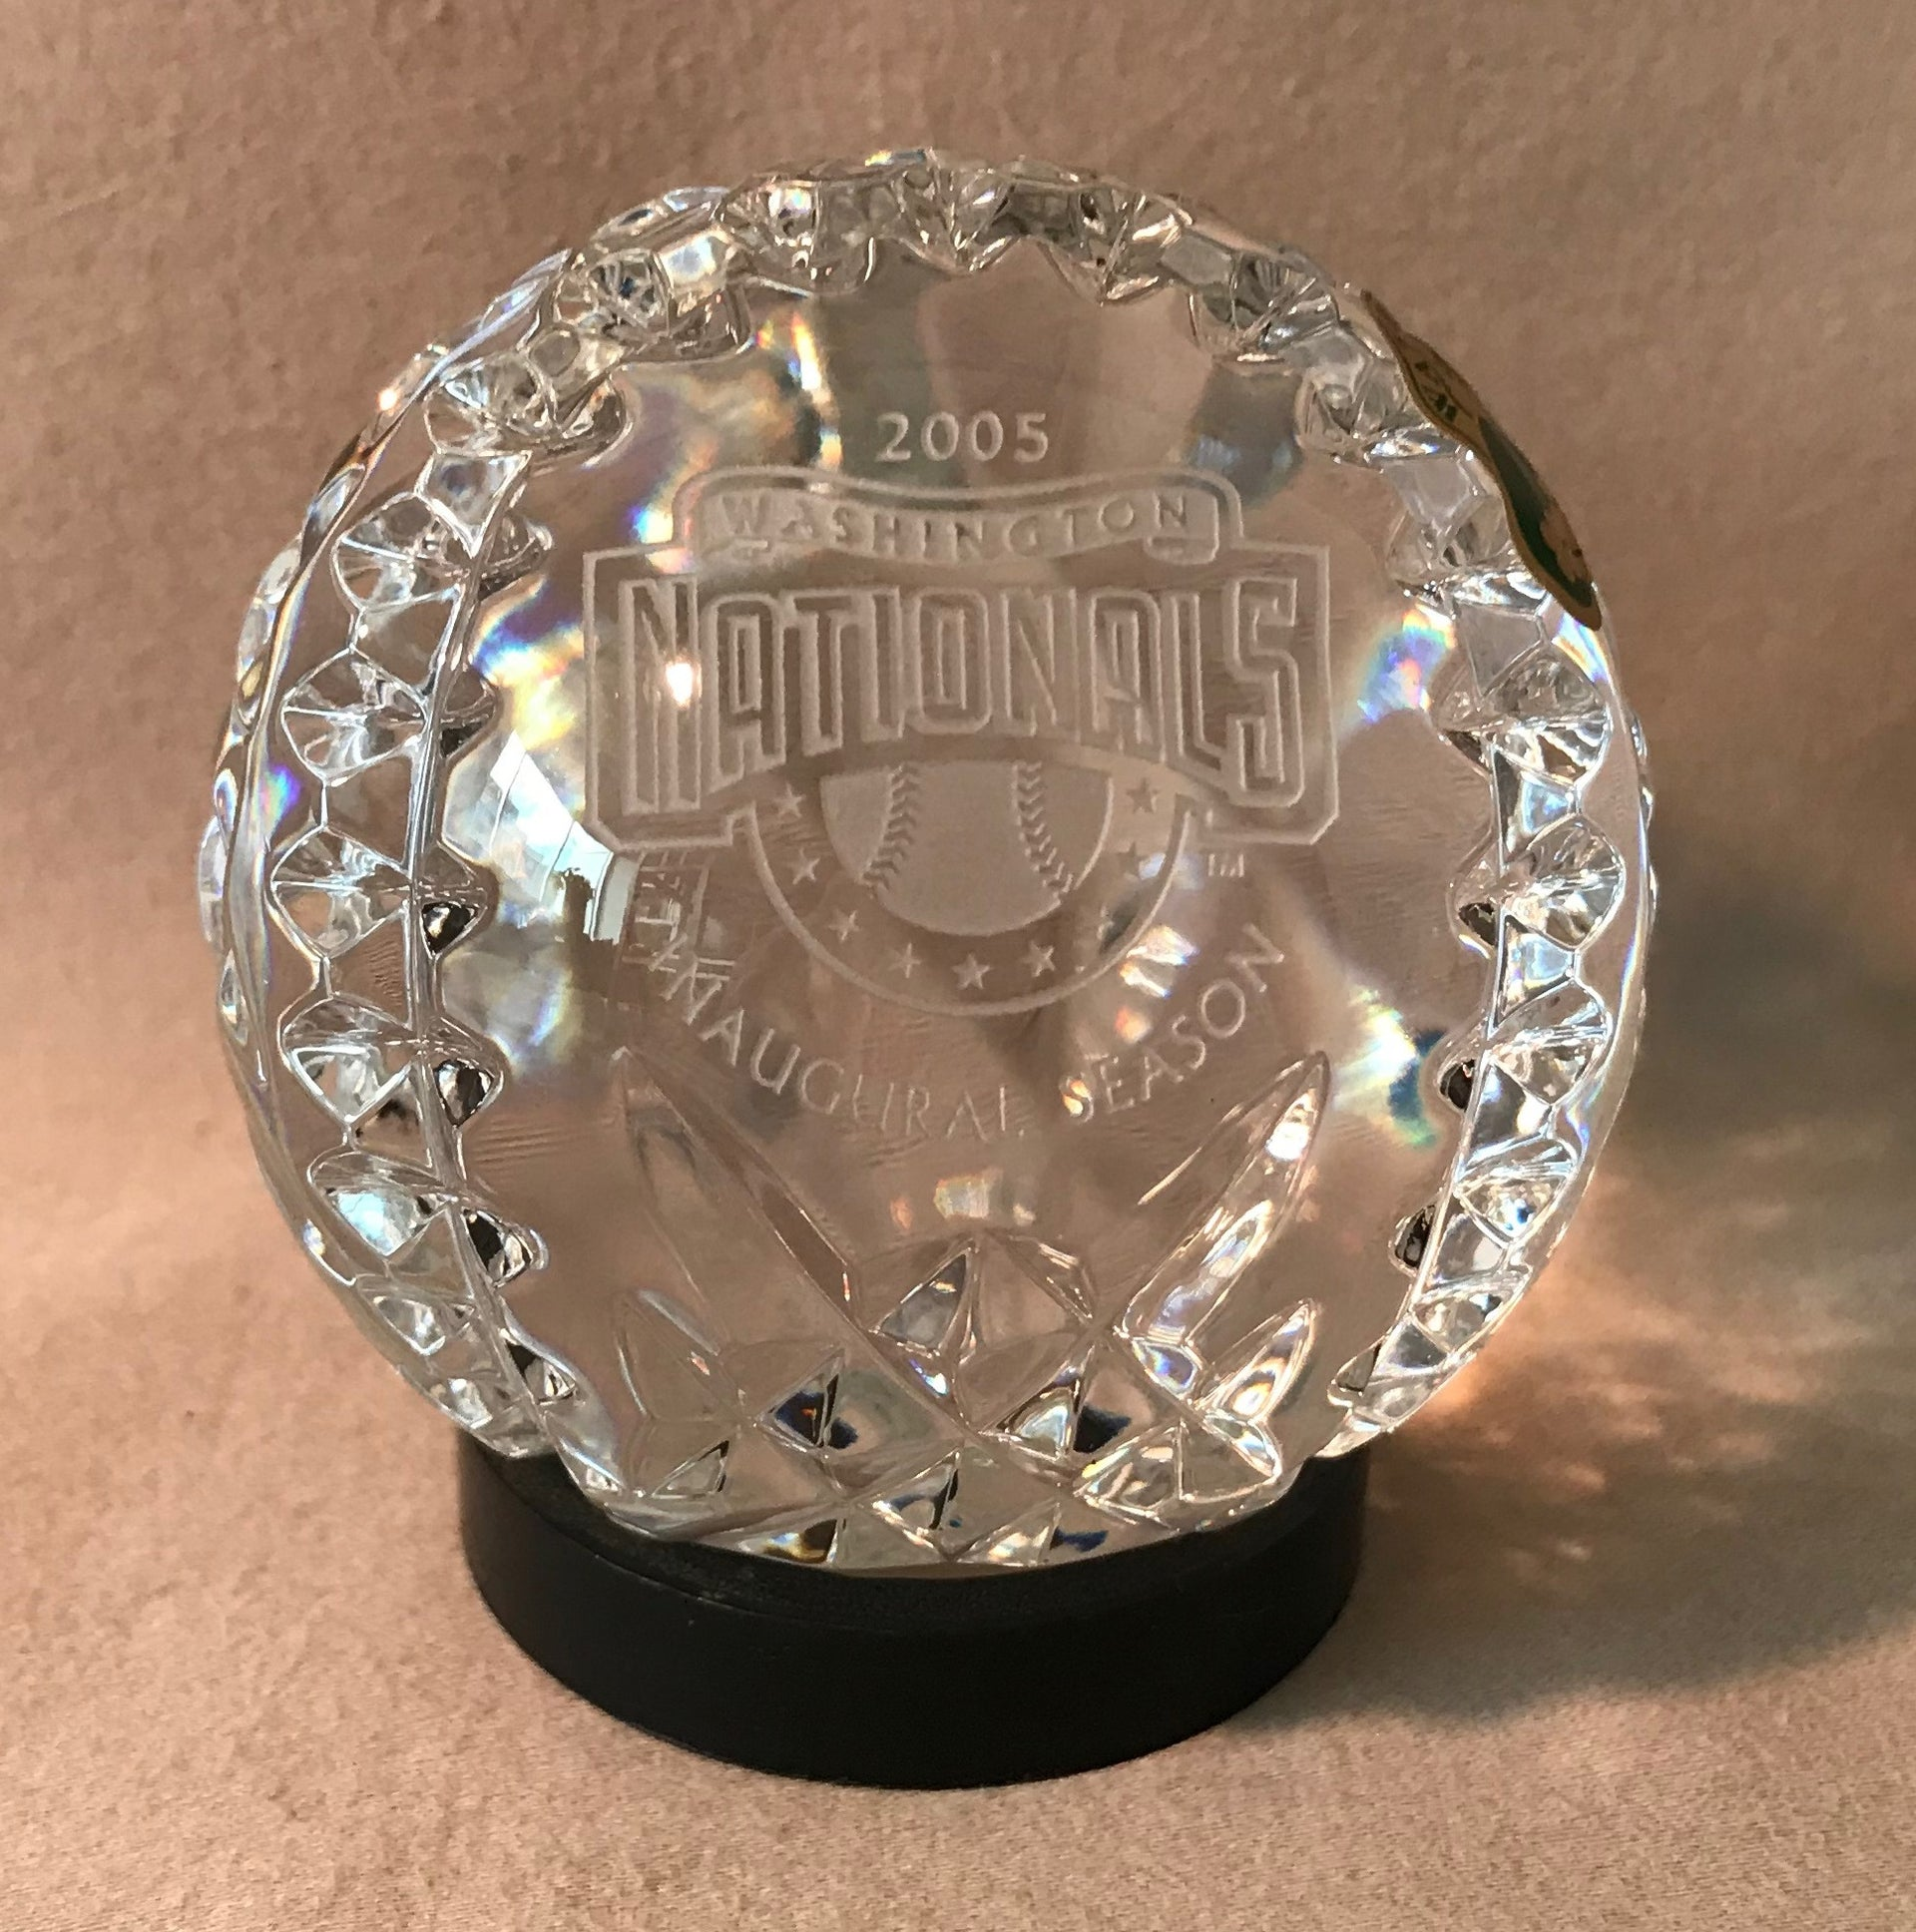 Waterford Commemorative Crystal Baseball - Washington Nationals Inaugural Season (2005)